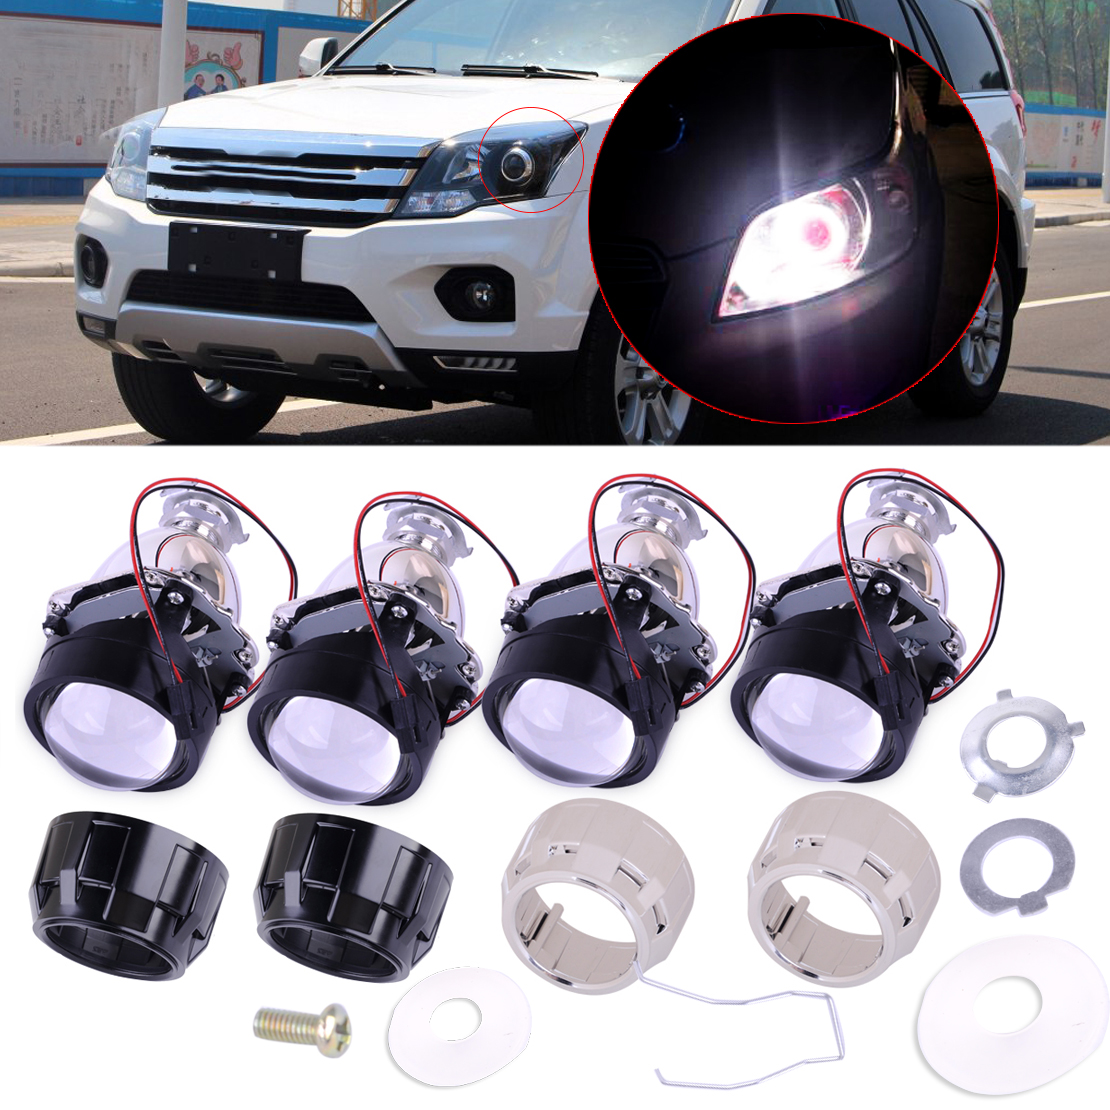 beler Car 2.5 inch H1 2 pin Right And Left Mini HID Low High Beams Bi-xenon Projector Halo Lens Kit with Clear Headlight Shroud